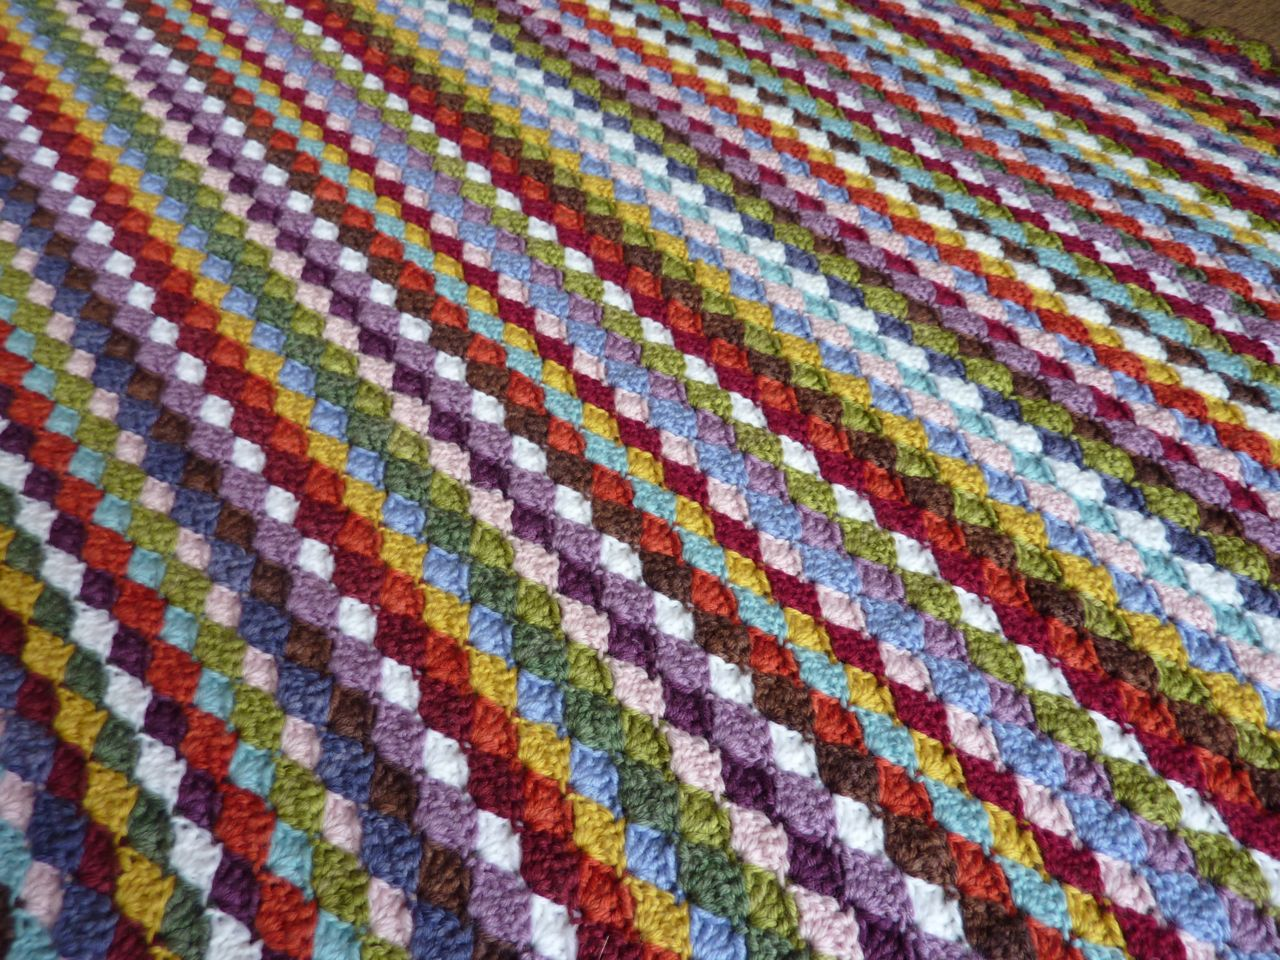 Crochet Stitches Edges : Crochet Blanket Edgings Crochet Guild